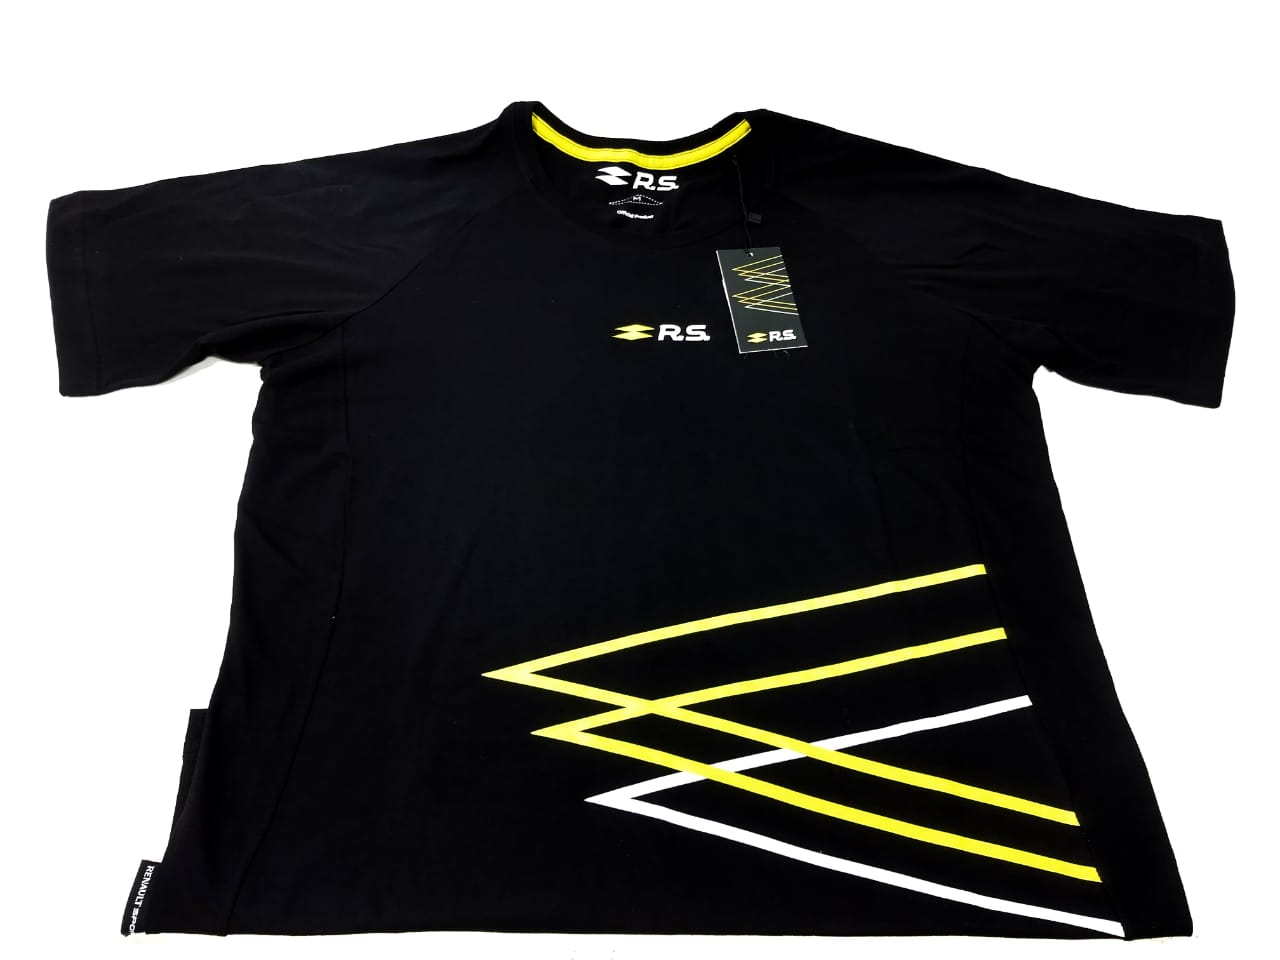 Camiseta G New Graphic Rs Masculino - Camiseta - Preto - Sku